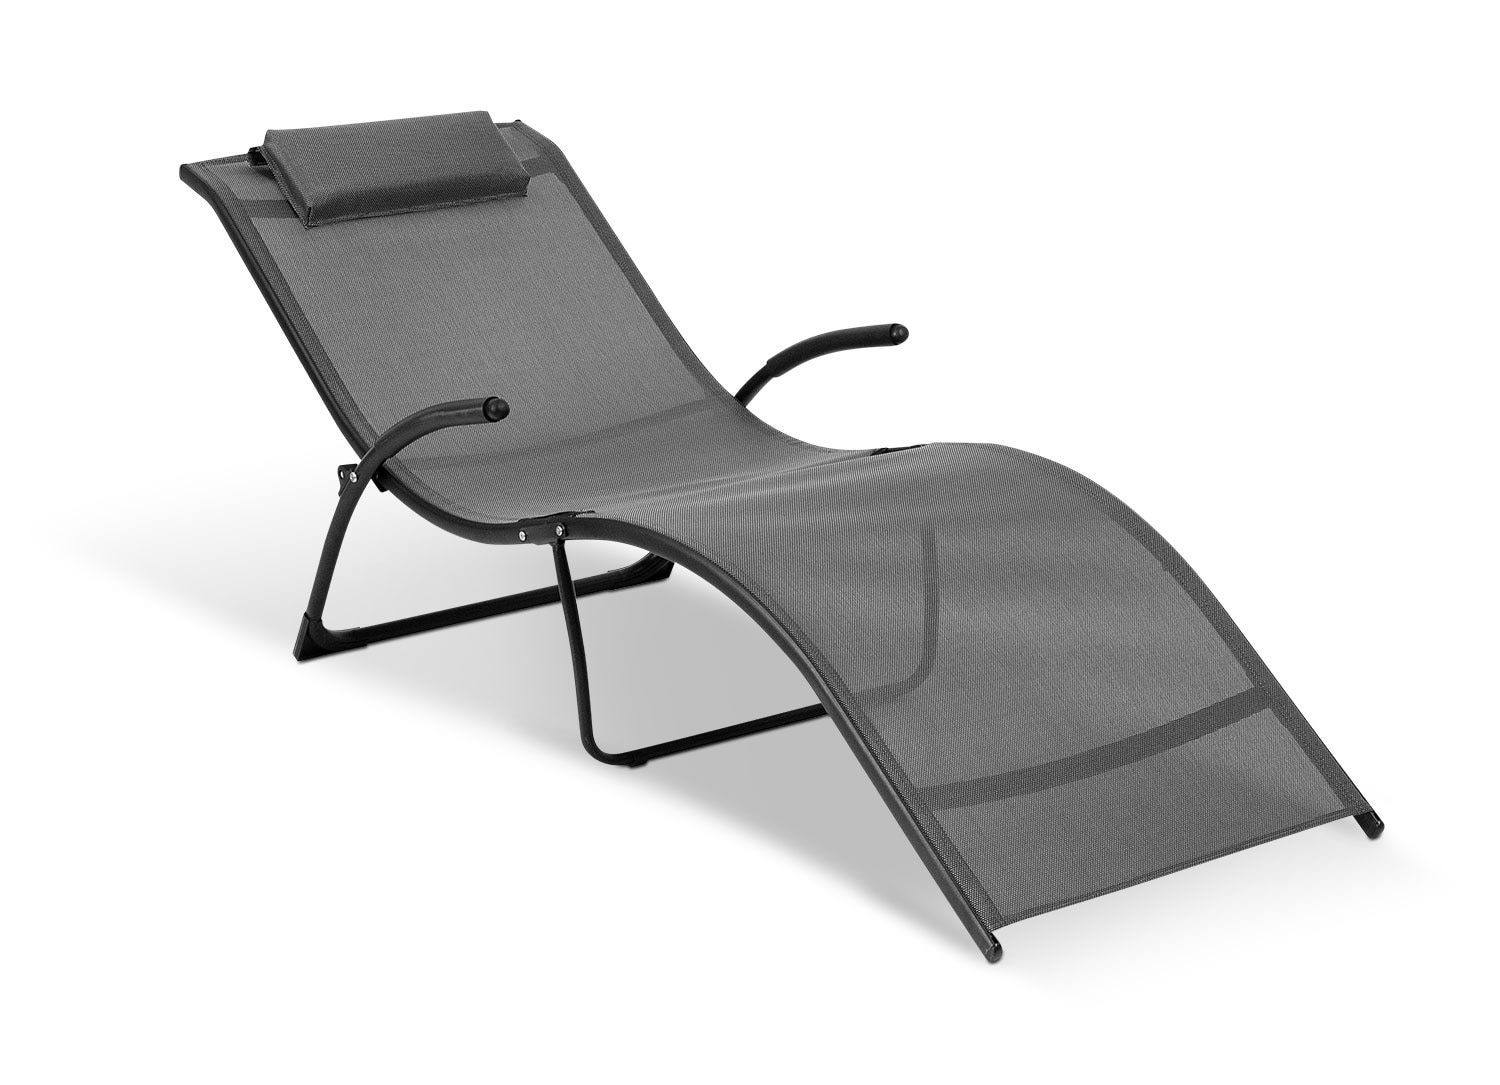 Outdoor Furniture - Foldable Reclining Lounger